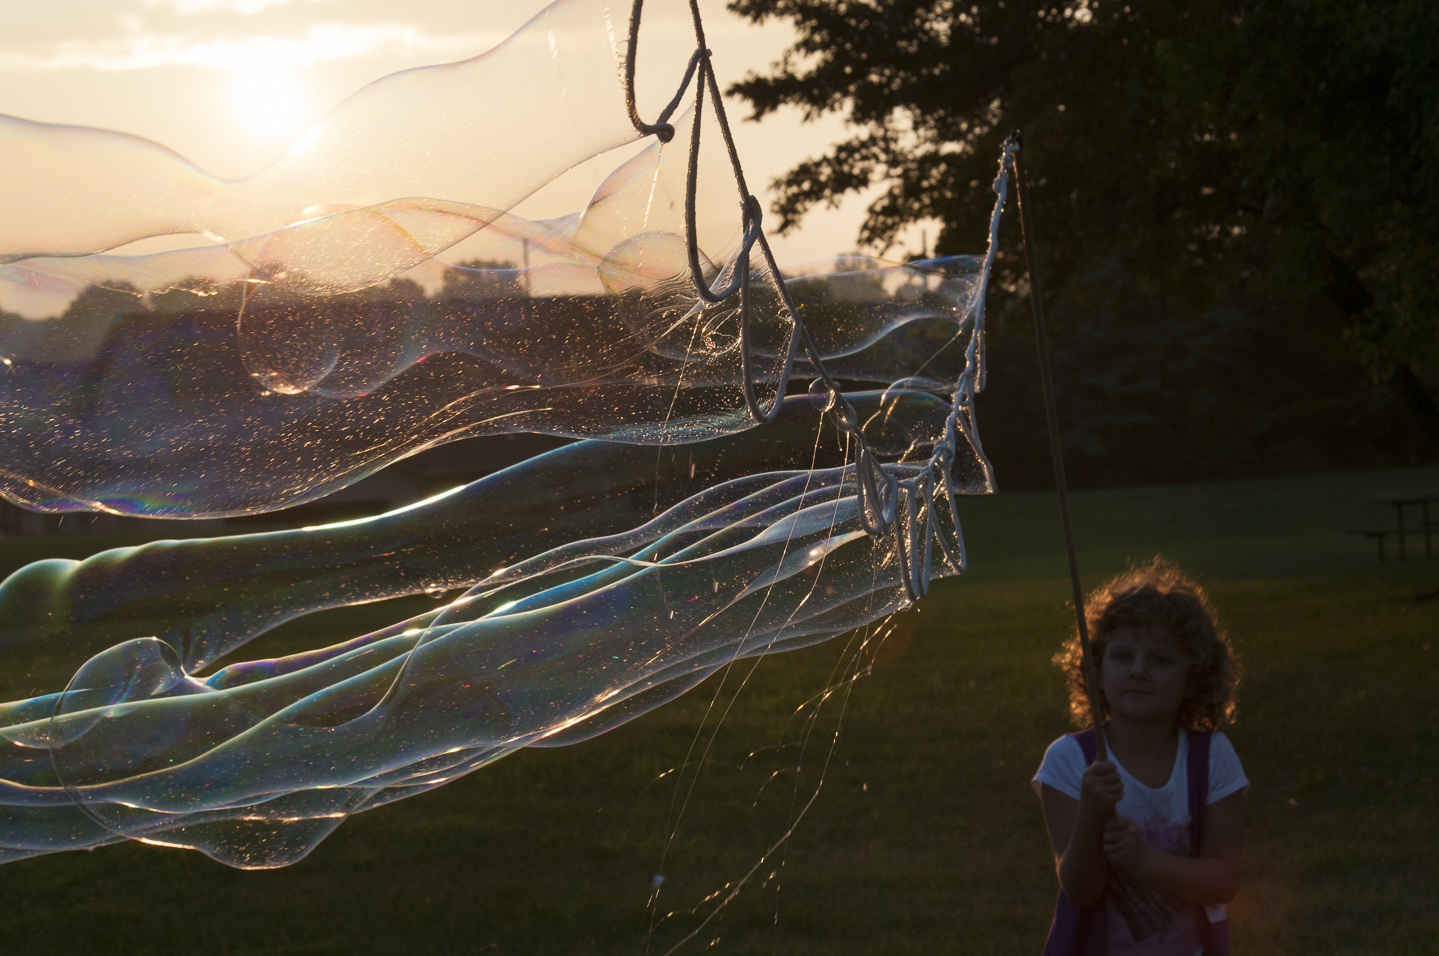 Garland Streaming Bubbles